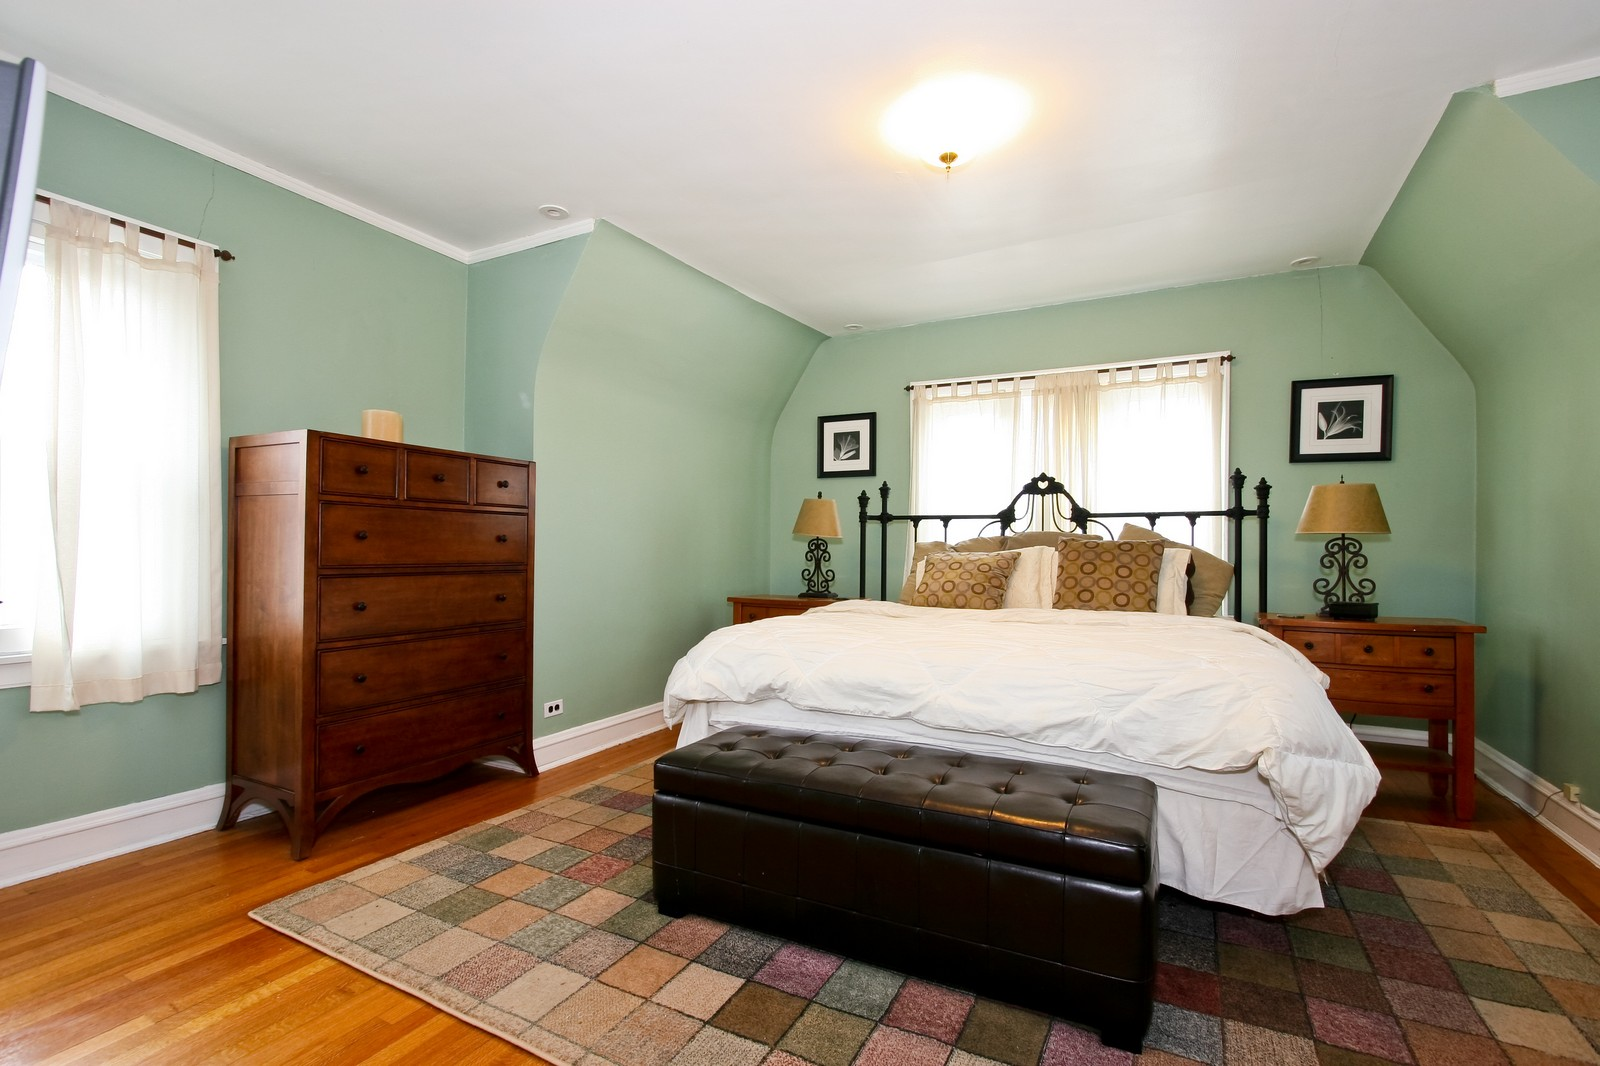 Real Estate Photography - 9001 S. Bell Ave., Chicago, IL, 60643 - Master Bedroom